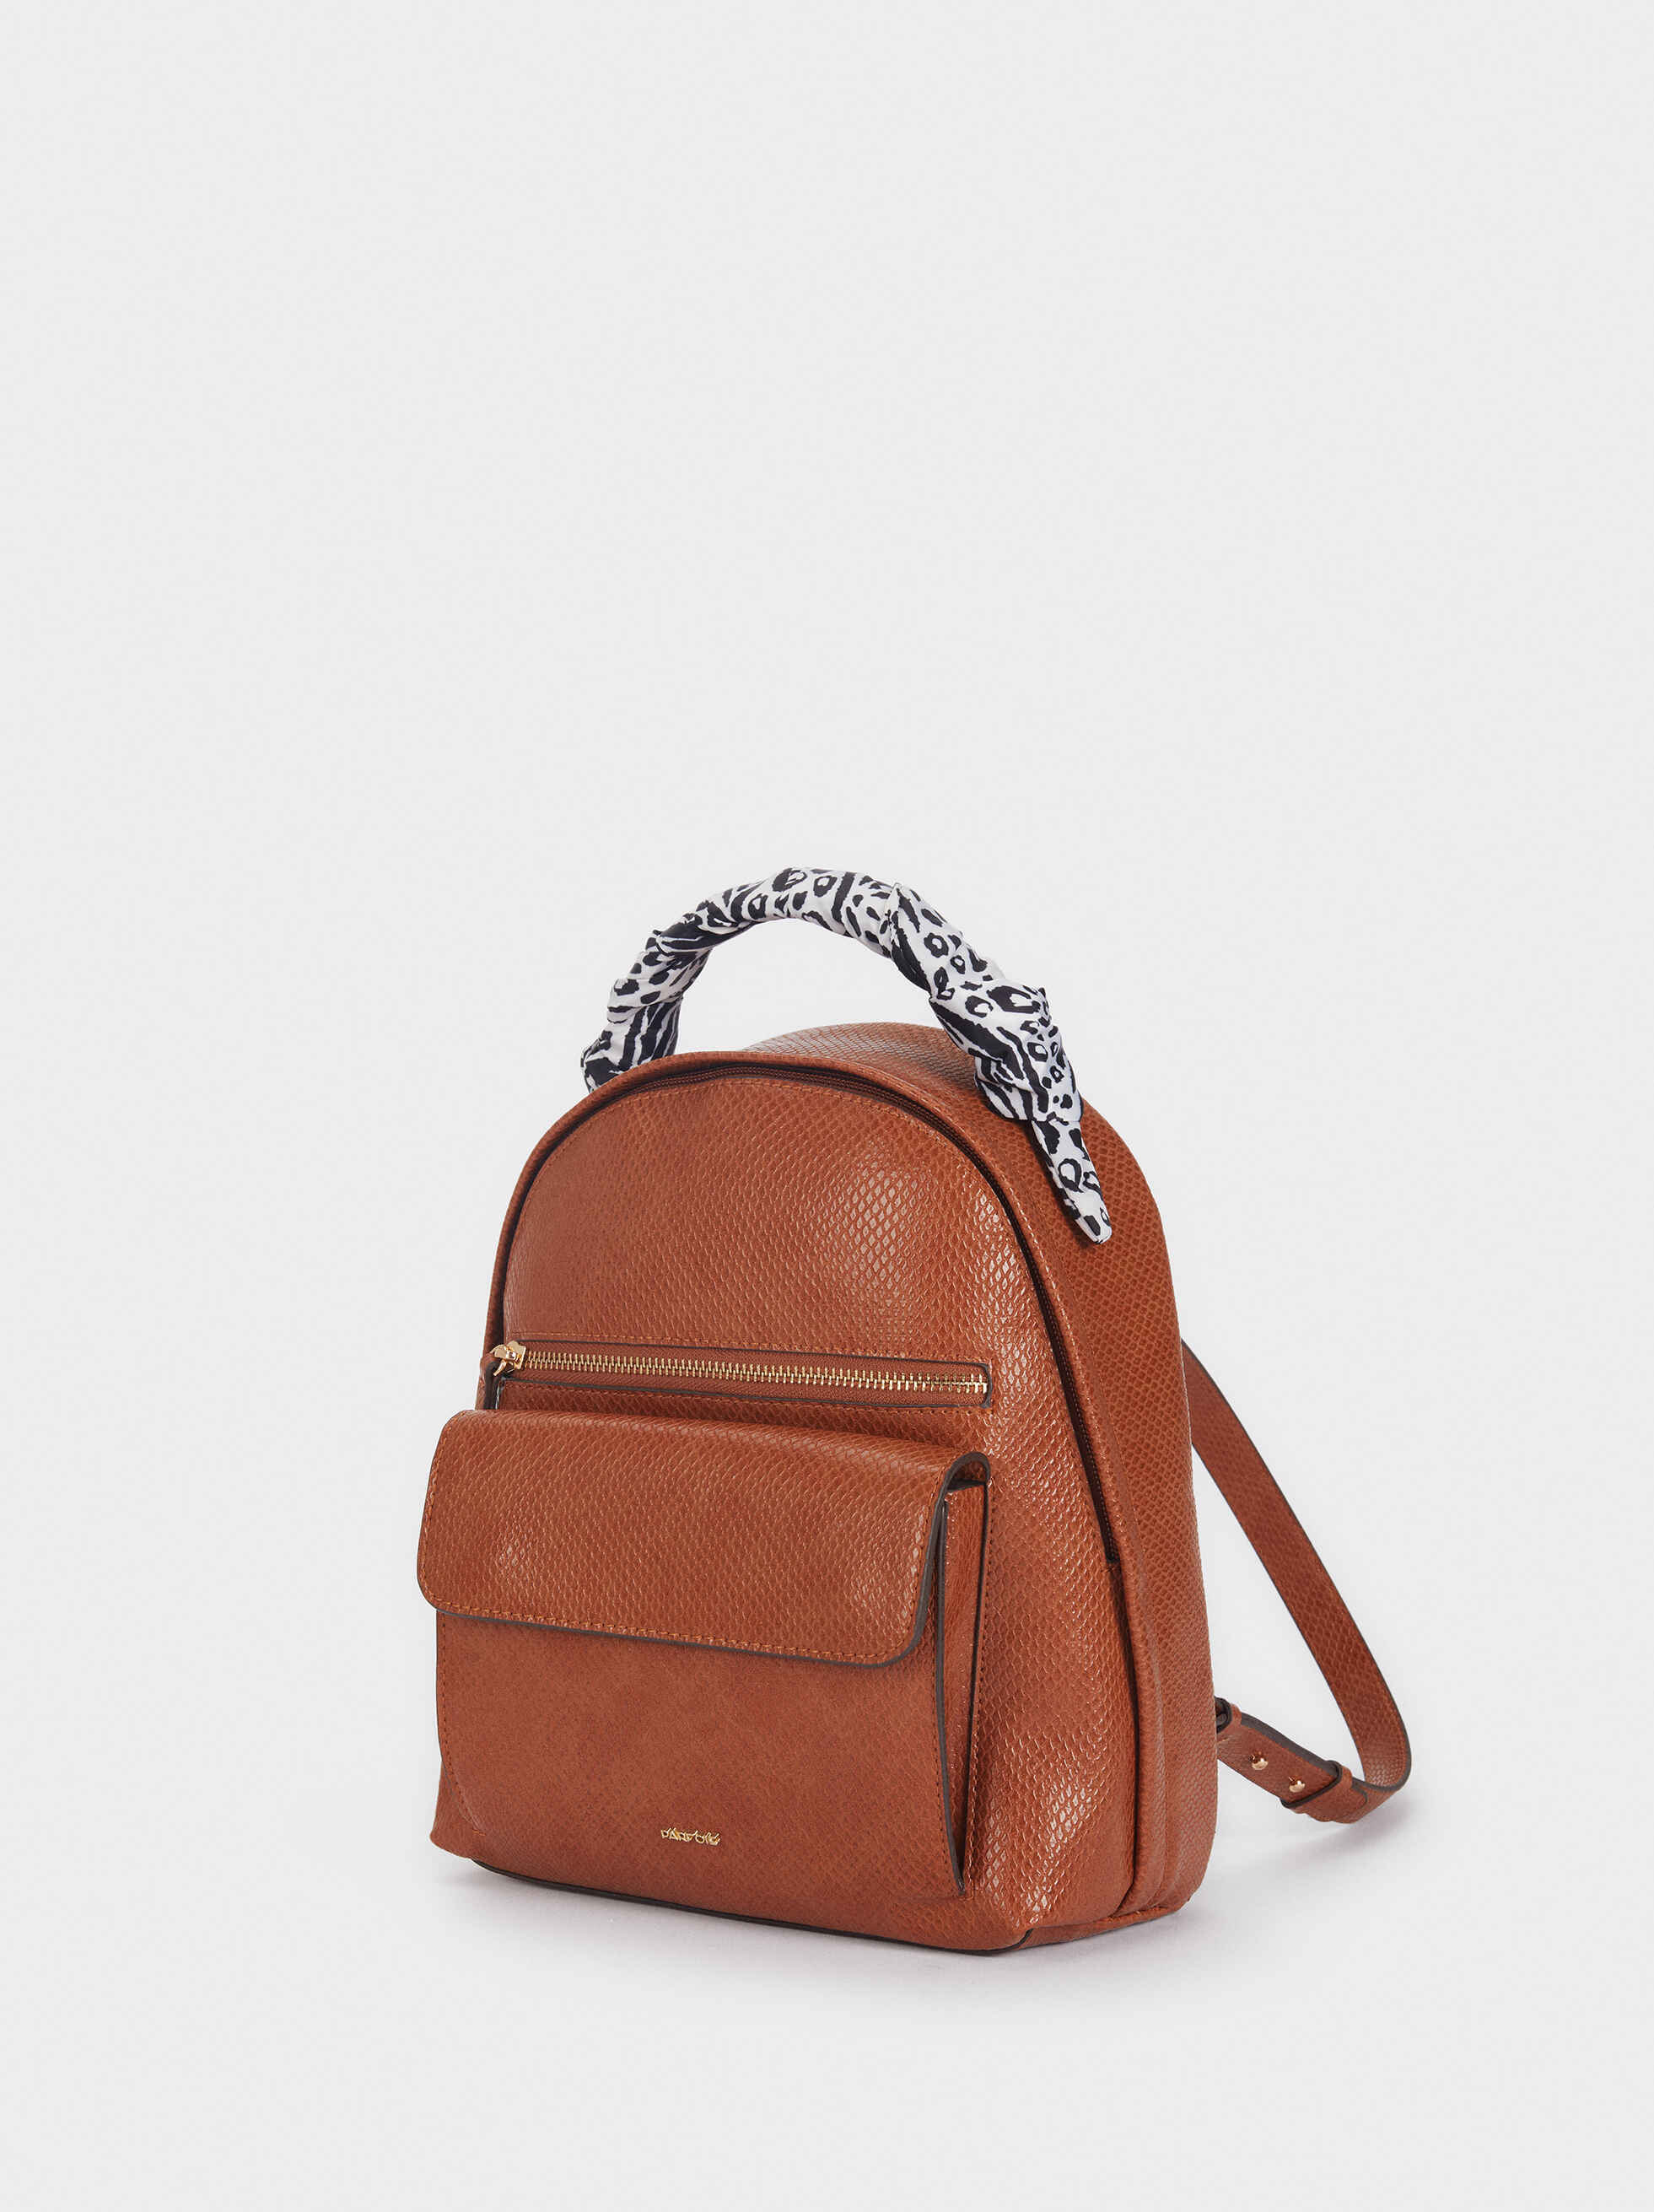 Backpack With Contrasting Printed Handle, Camel, hi-res